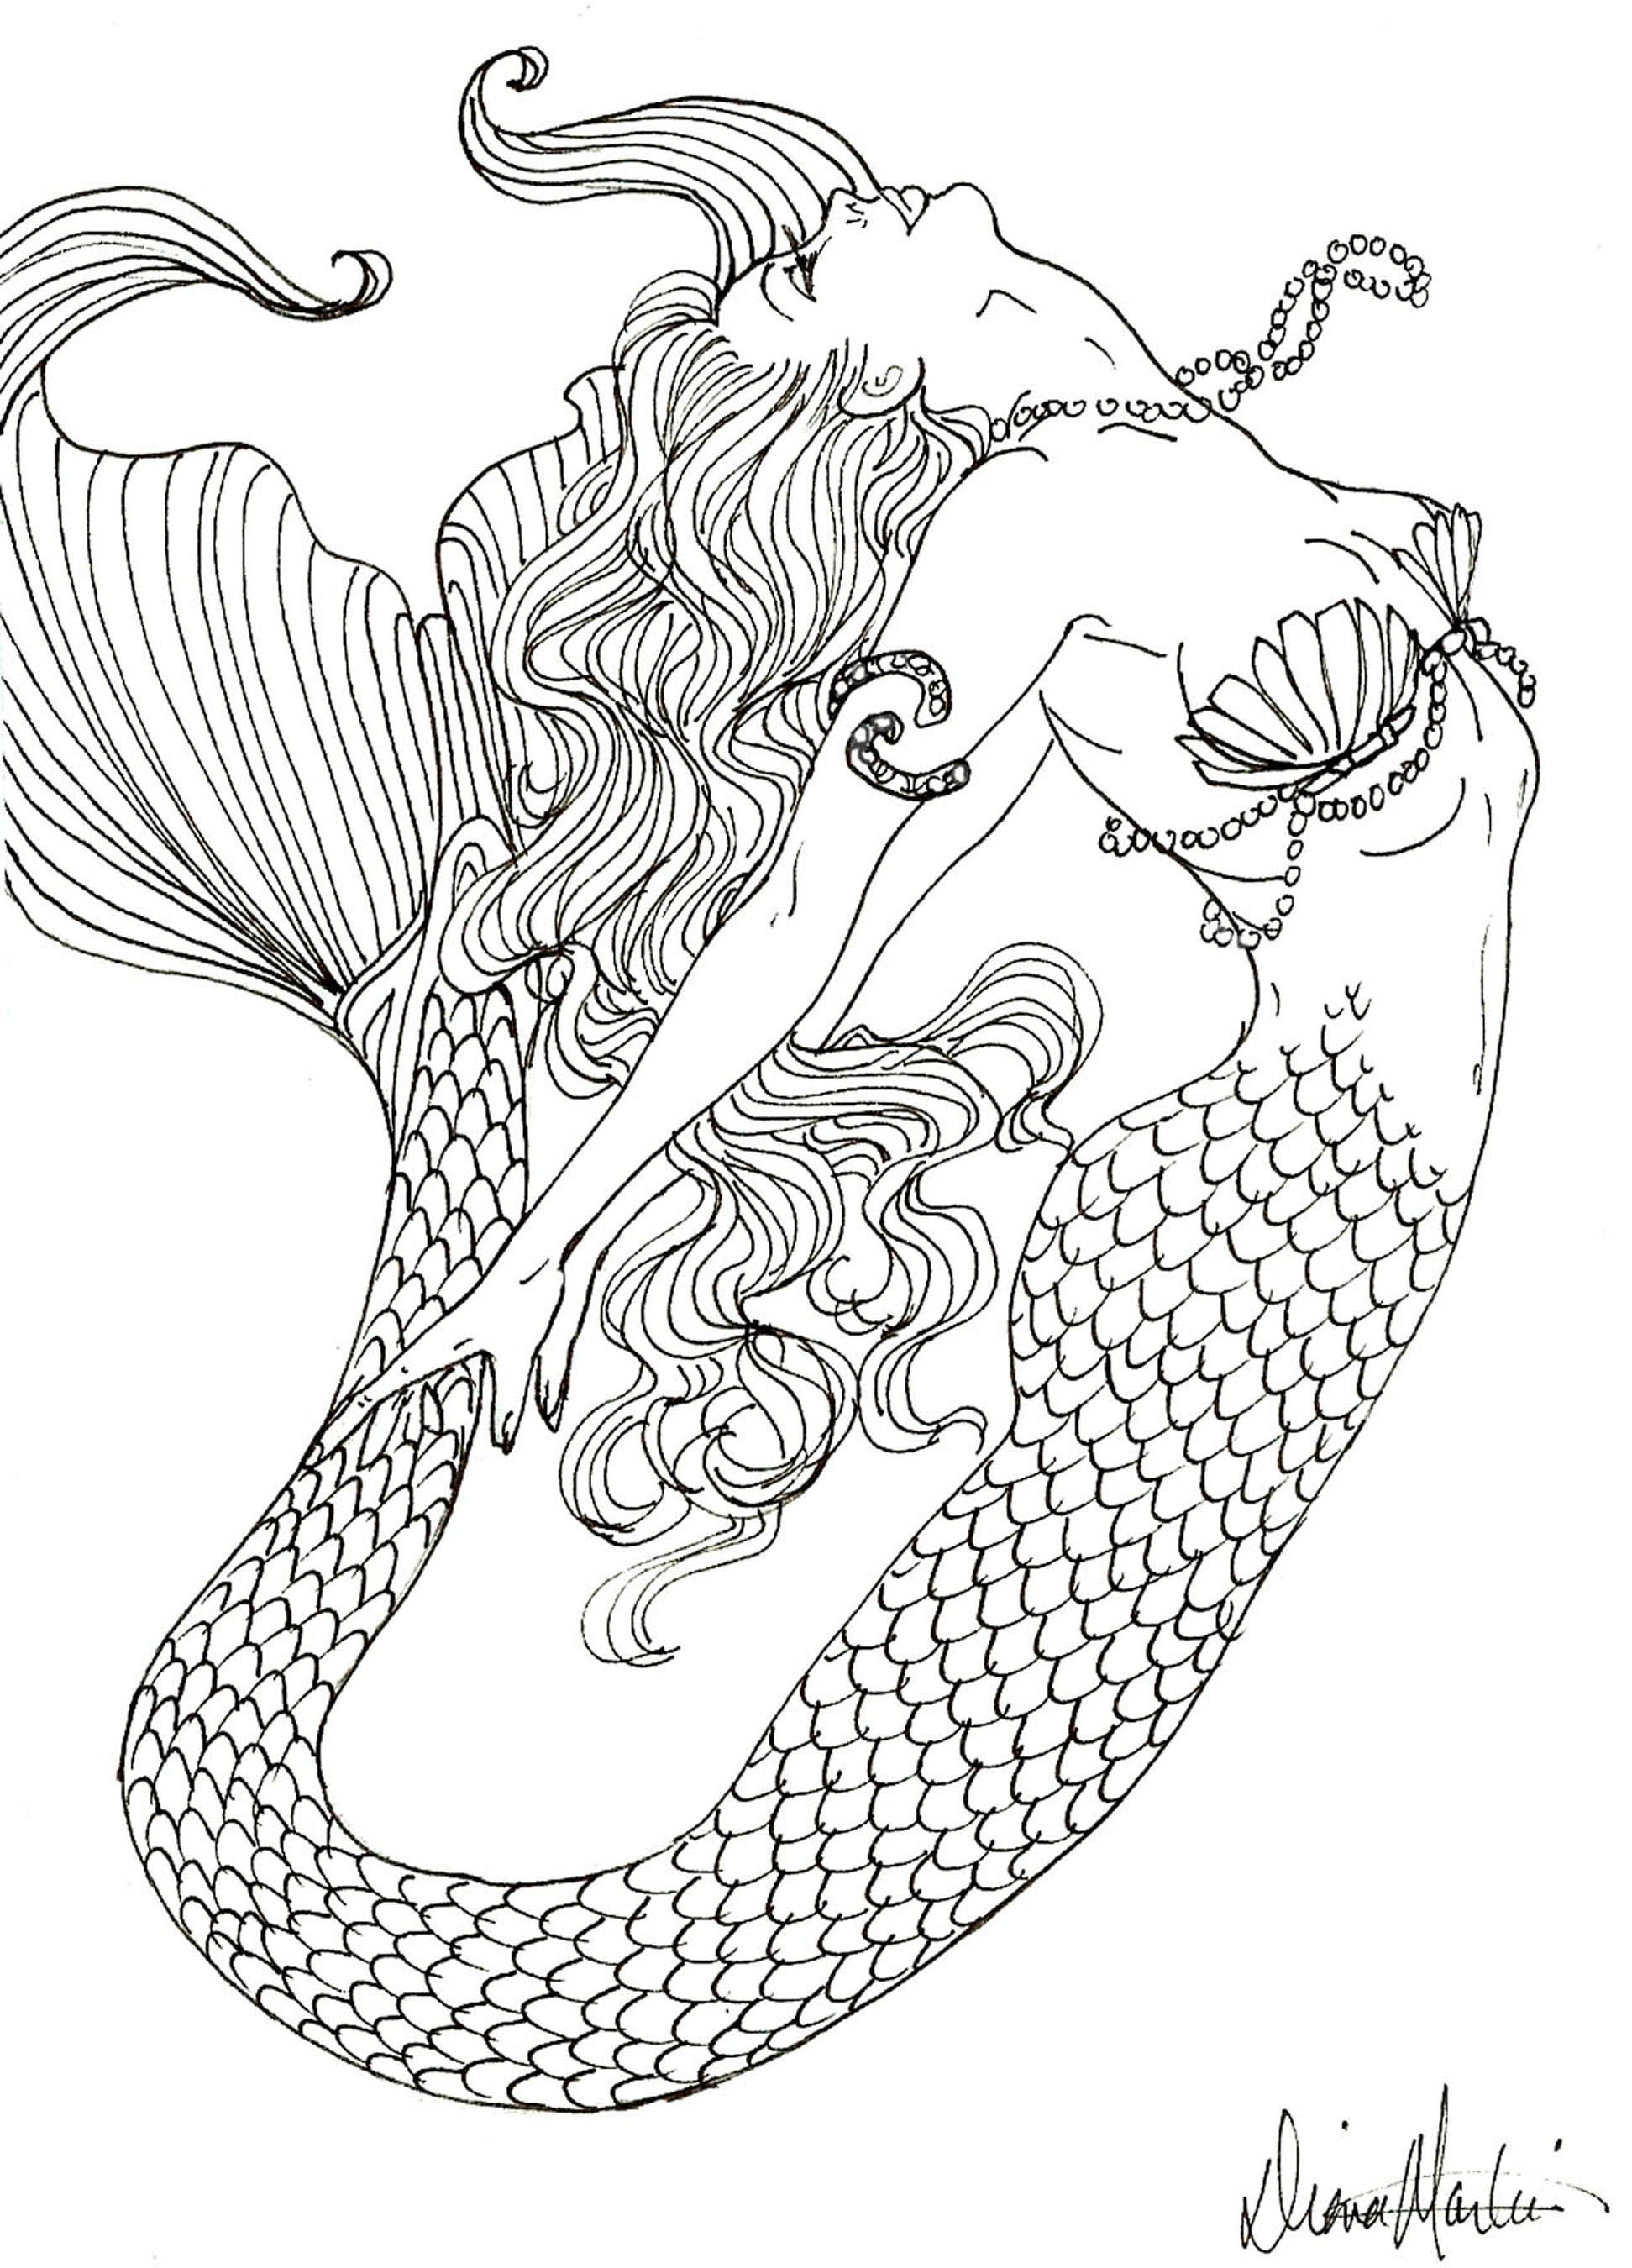 mermaid coloring pages for adults -